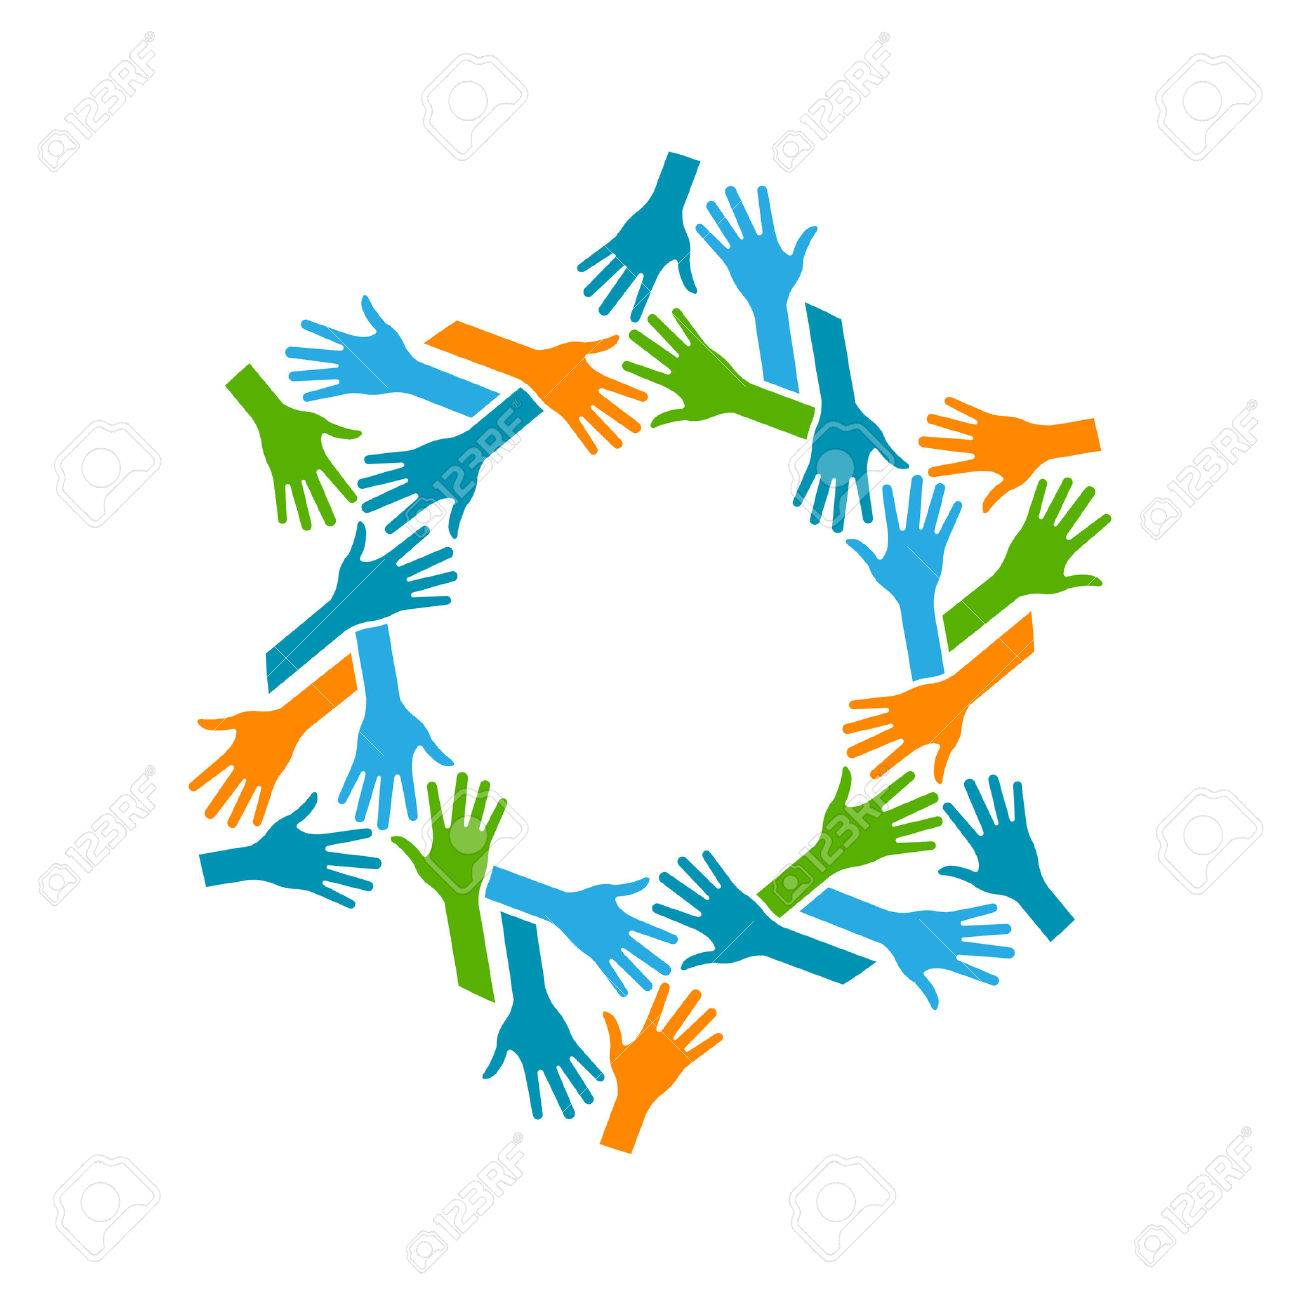 Hands Circle. Concept of teamwork and Community Archivio Fotografico - 39447351